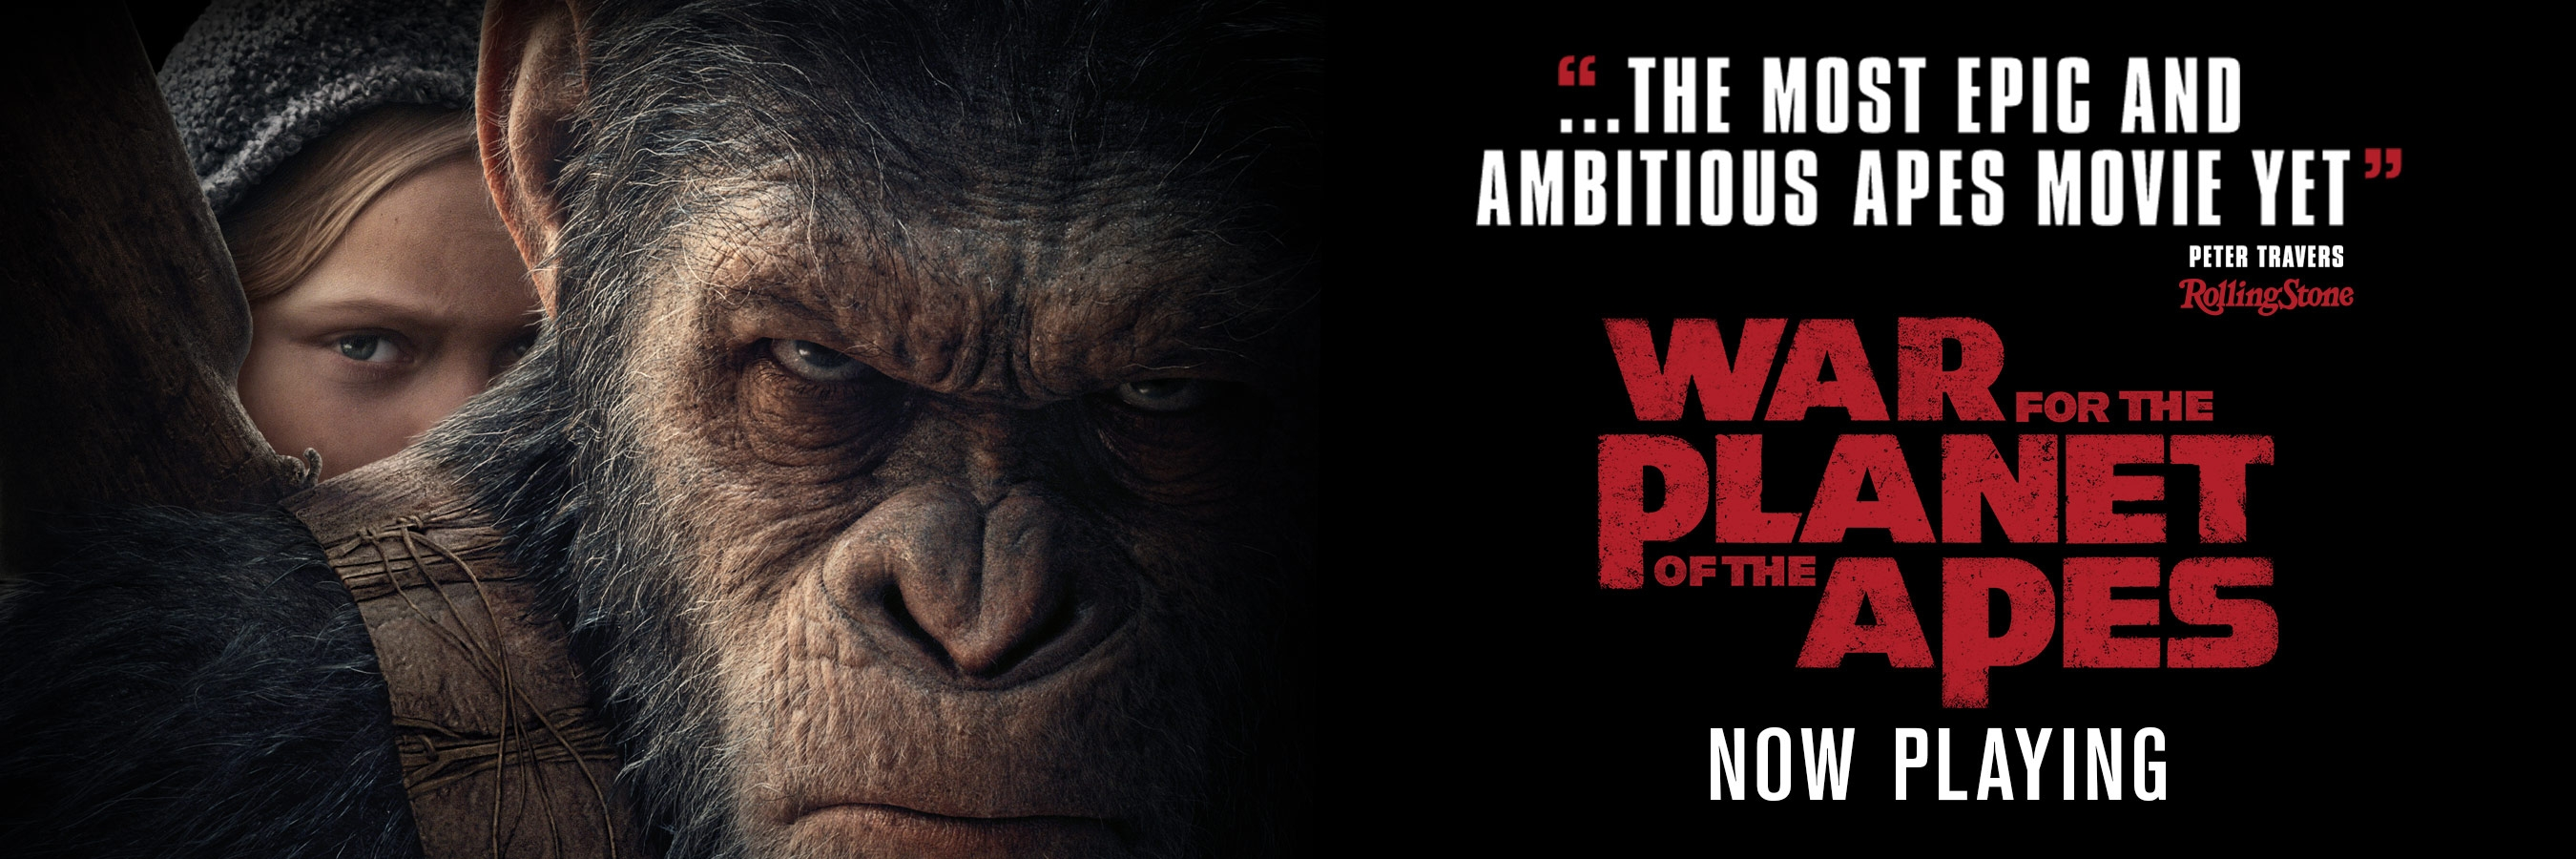 desktop-now-playing-war-of-apes-film-header-front-main-stage